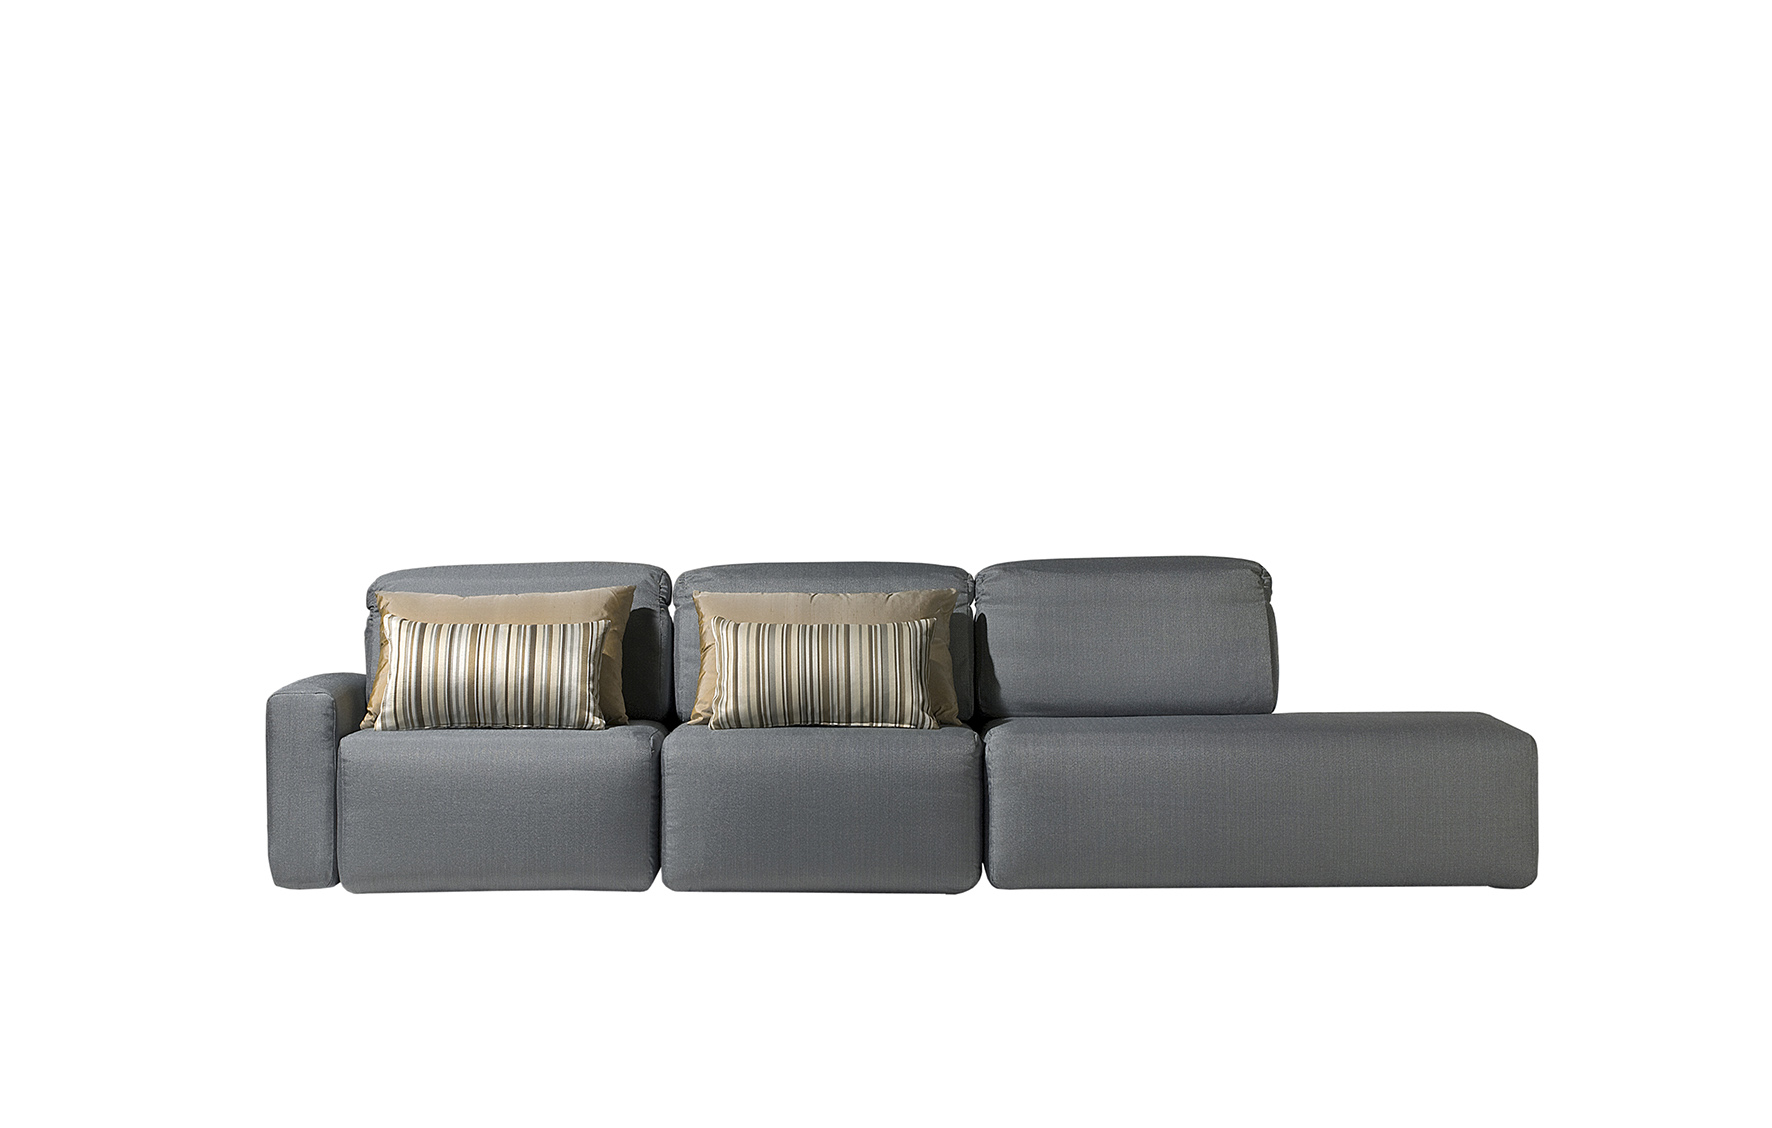 modular sofas sofas by furniture. Black Bedroom Furniture Sets. Home Design Ideas